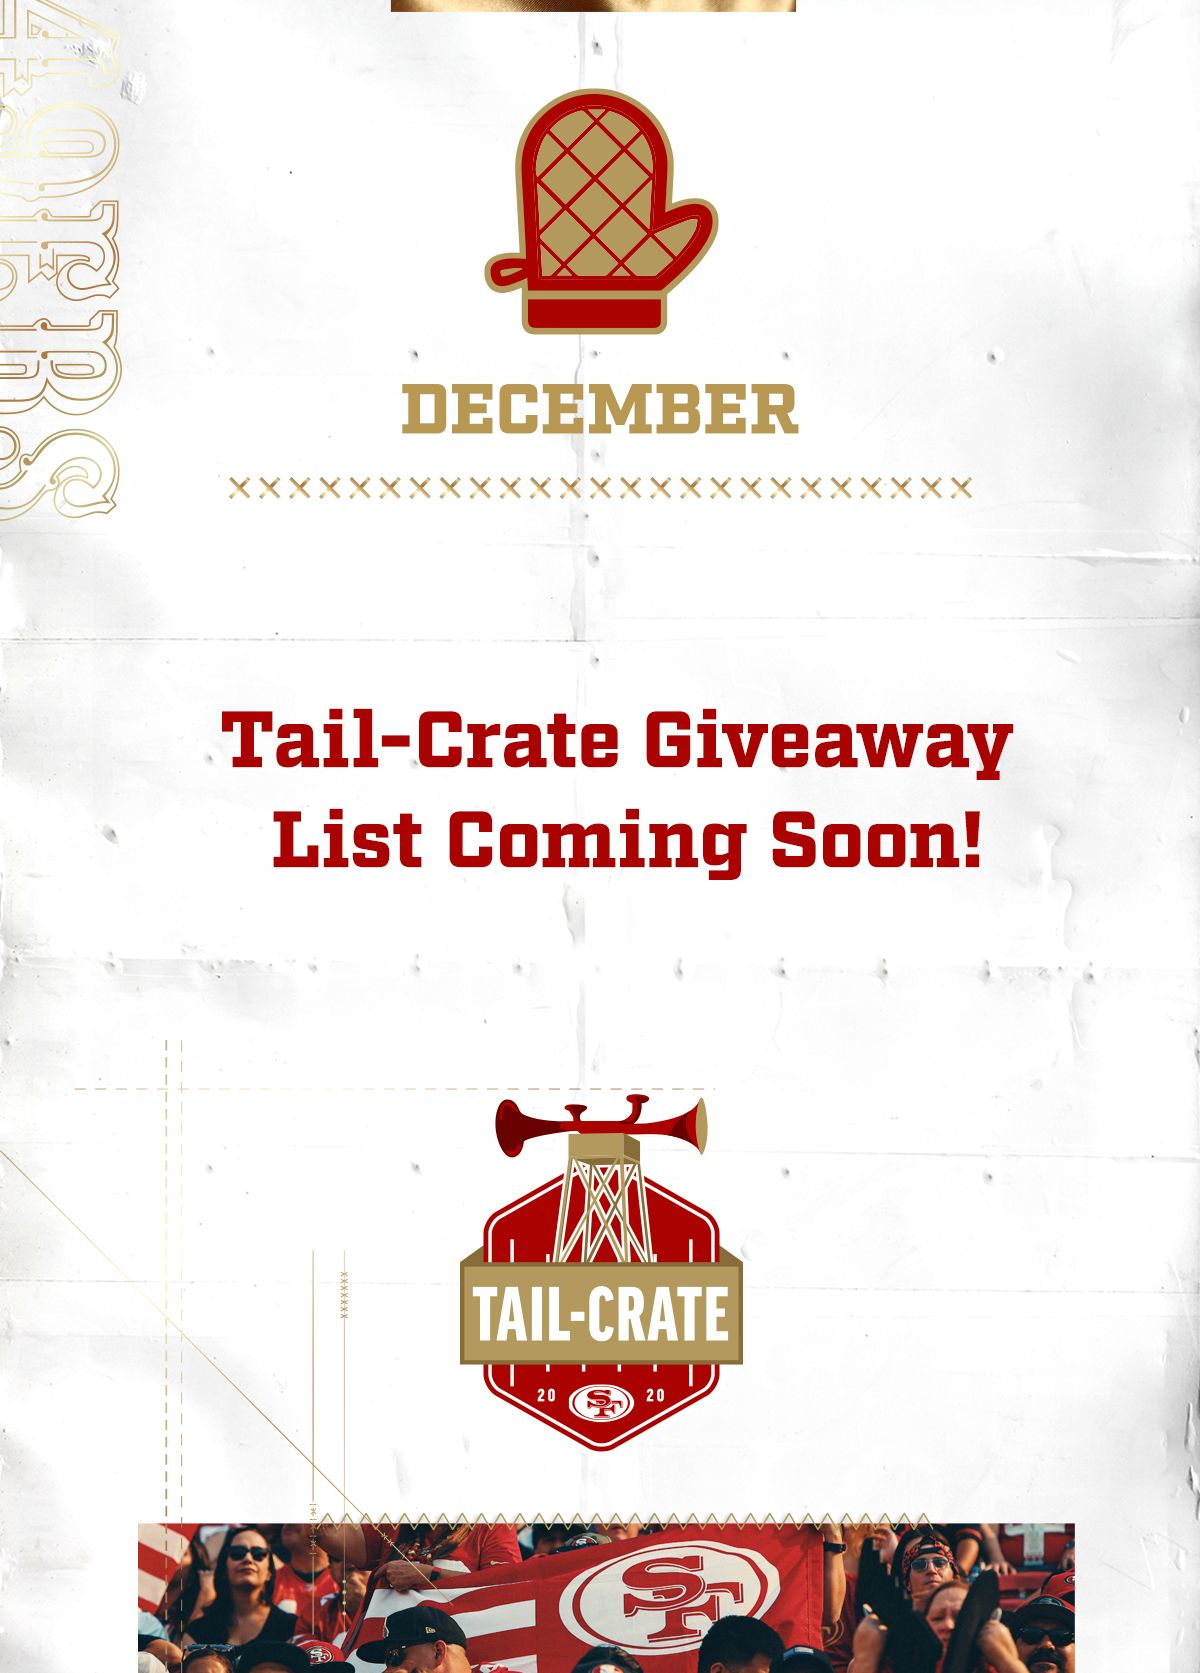 Tail-Crate Web Assets-DEC-4x5_